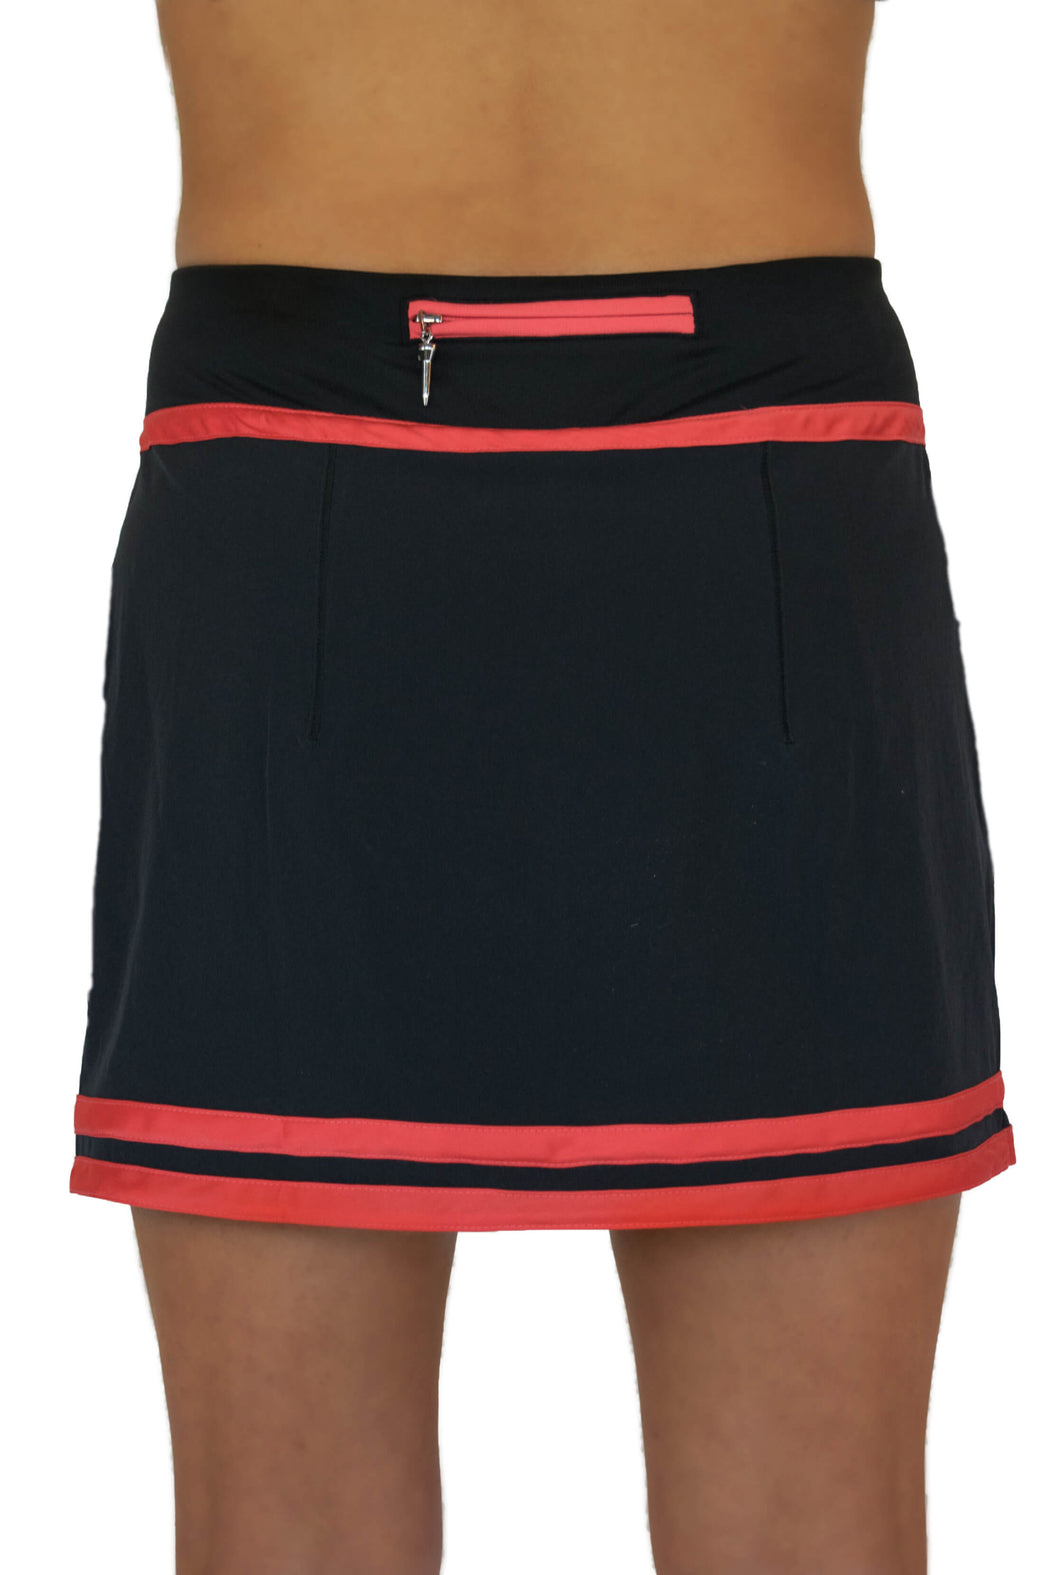 NEW! Striped Hem Golf Skirt - Black with Haute Coral Stripes - FlirTee Golf